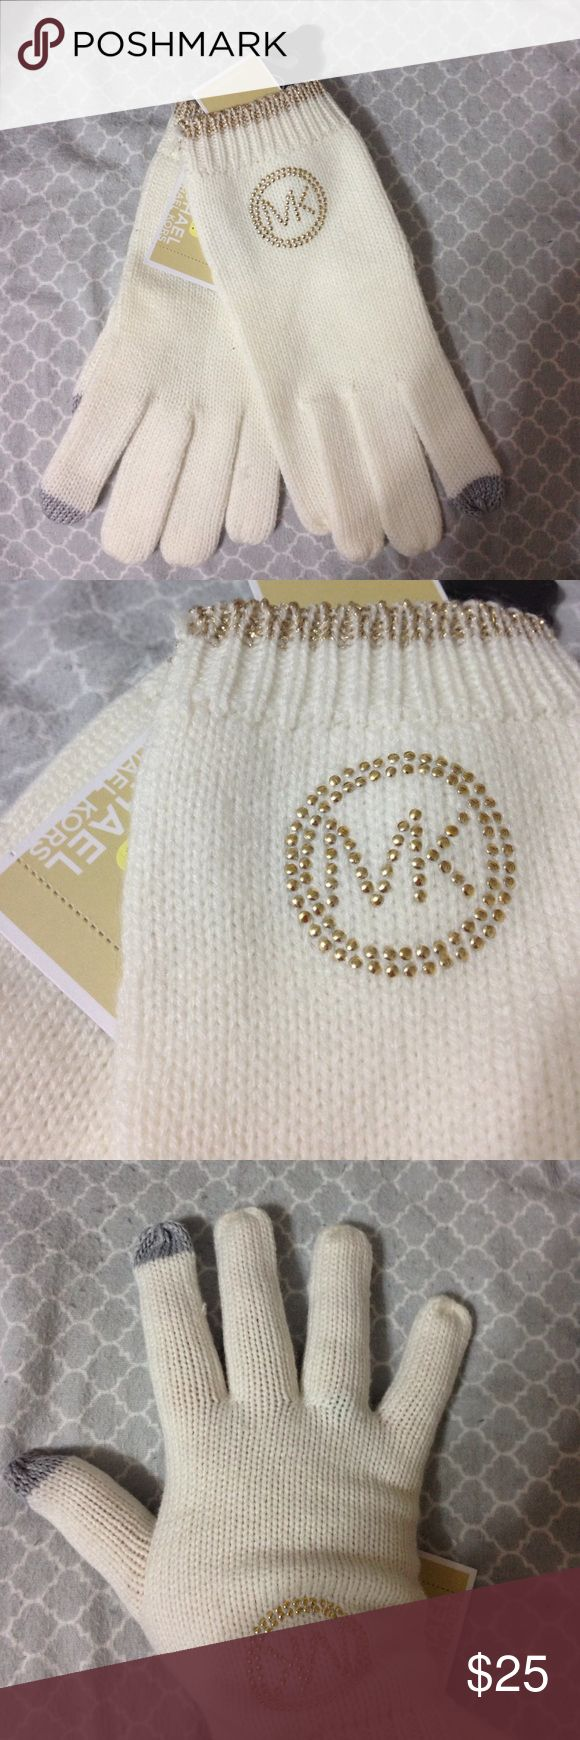 Michael Kors gloves Michael Kors gloves, tech friendly, thumb and second finger tech, cream color, received as a gift so they've never been used. Also have matching scarf and hat, can be sold as set or separately. KORS Michael Kors Accessories Gloves & Mittens